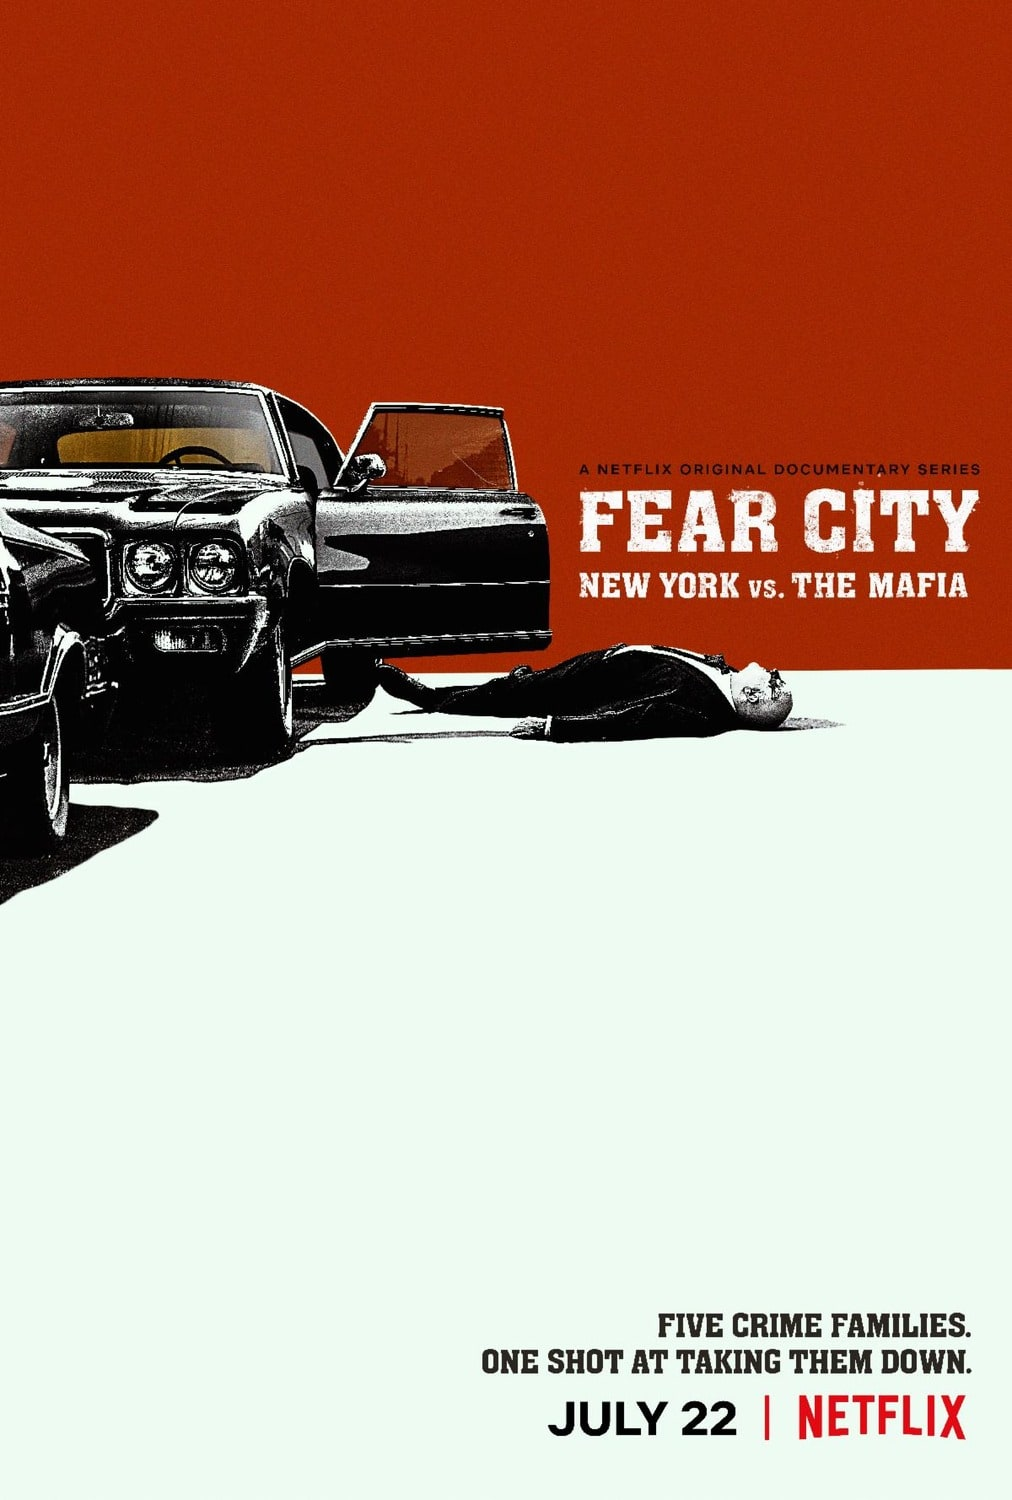 Stiahni si Seriál     Mesto strachu: New York versus mafie / Fear City: New York vs The Mafia - 1. serie [WebRip][1080p] = CSFD 84%